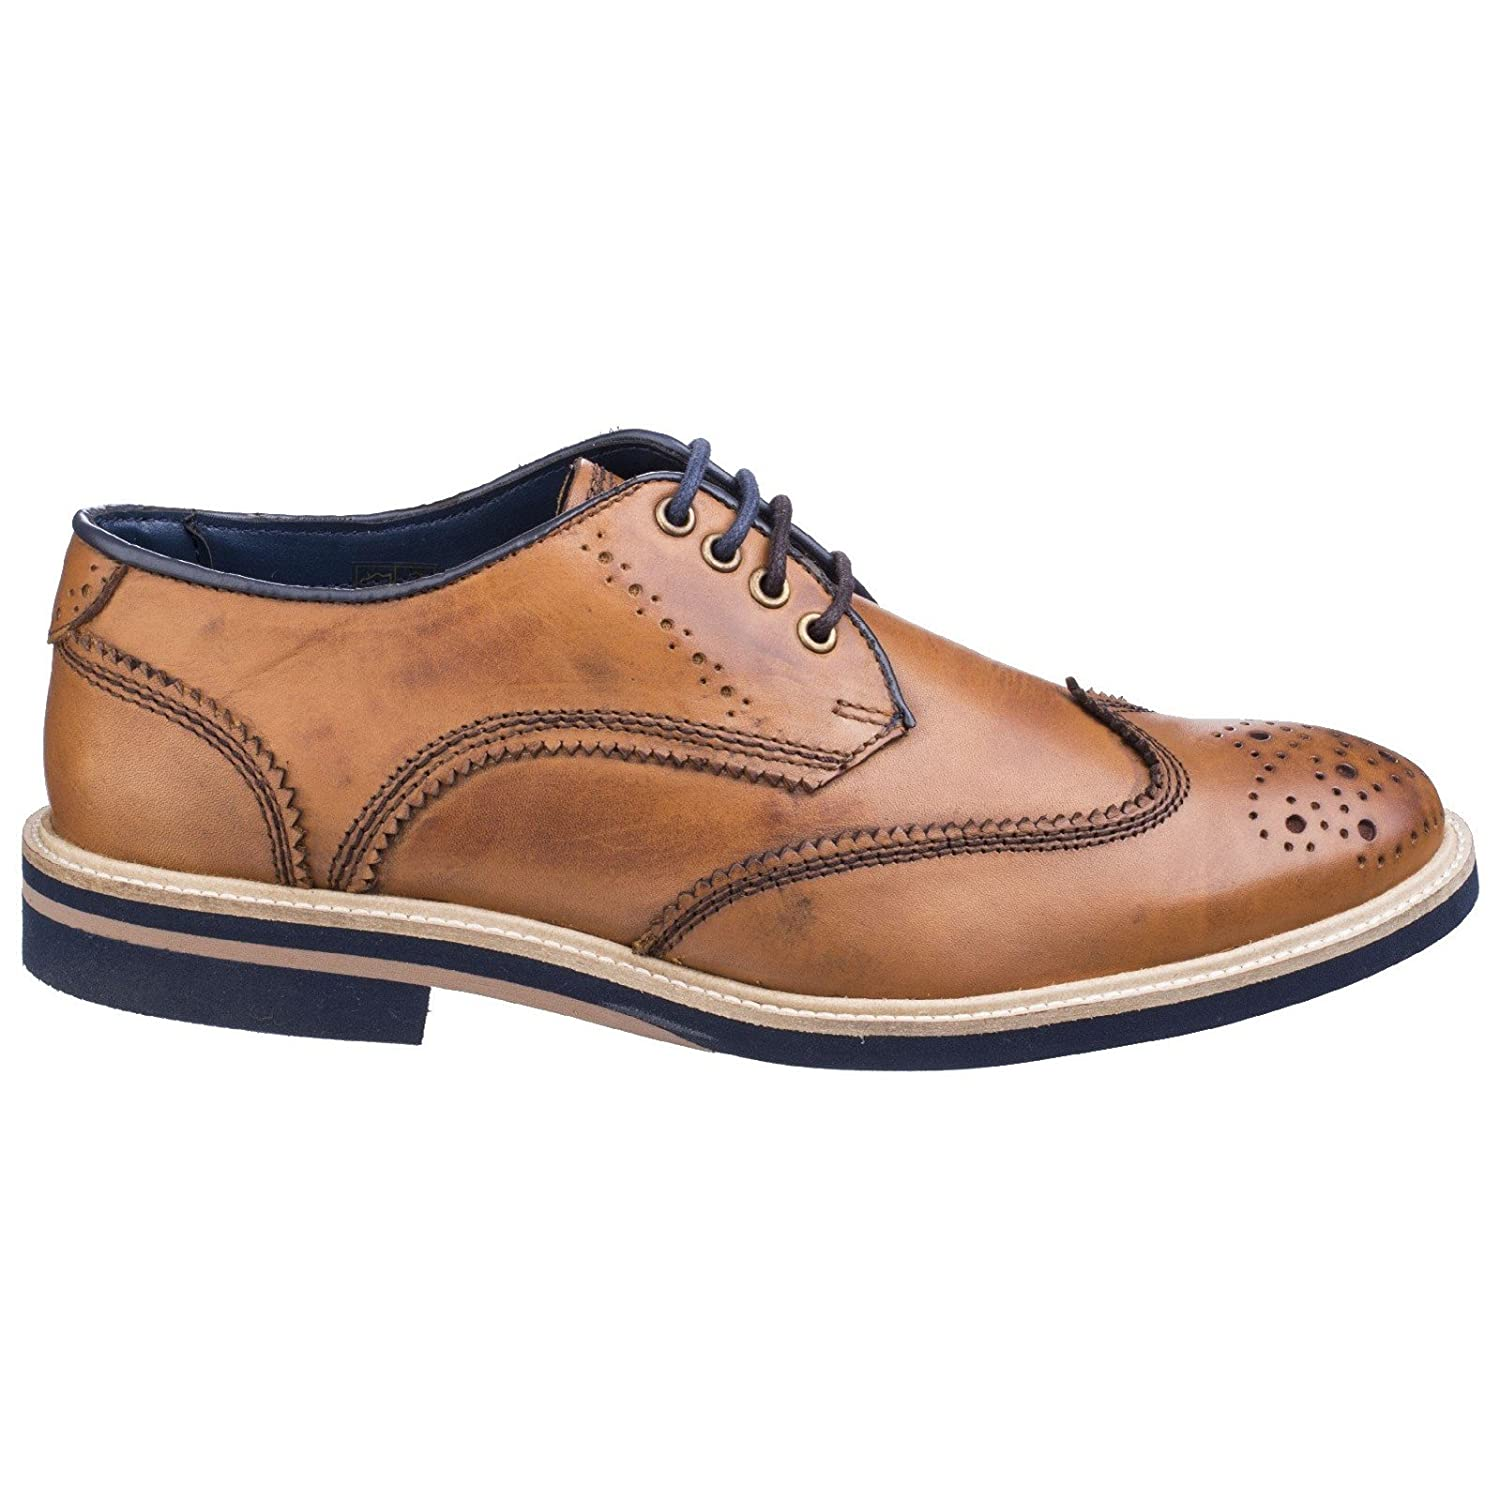 Lambretta Mens Henry Leather Brogue Lace-up- TAN (21190) (UK 10):  Amazon.co.uk: Shoes & Bags